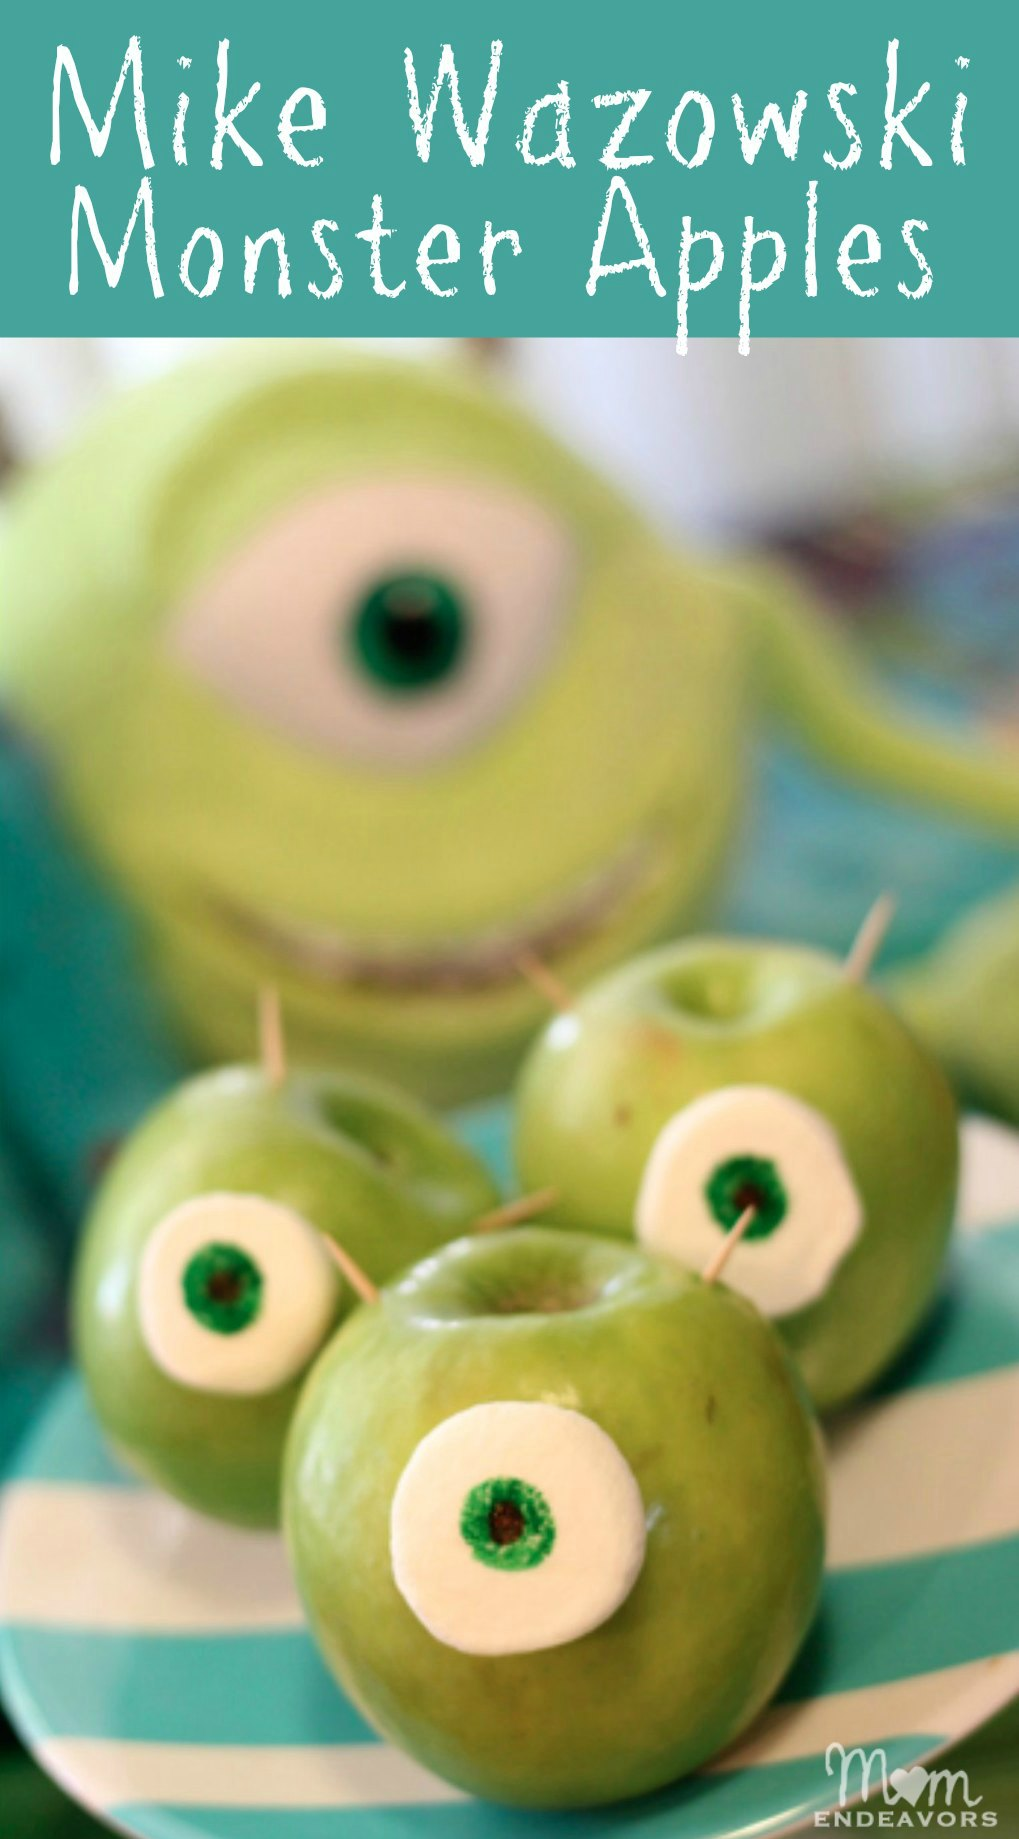 Mike Wazowski Apples